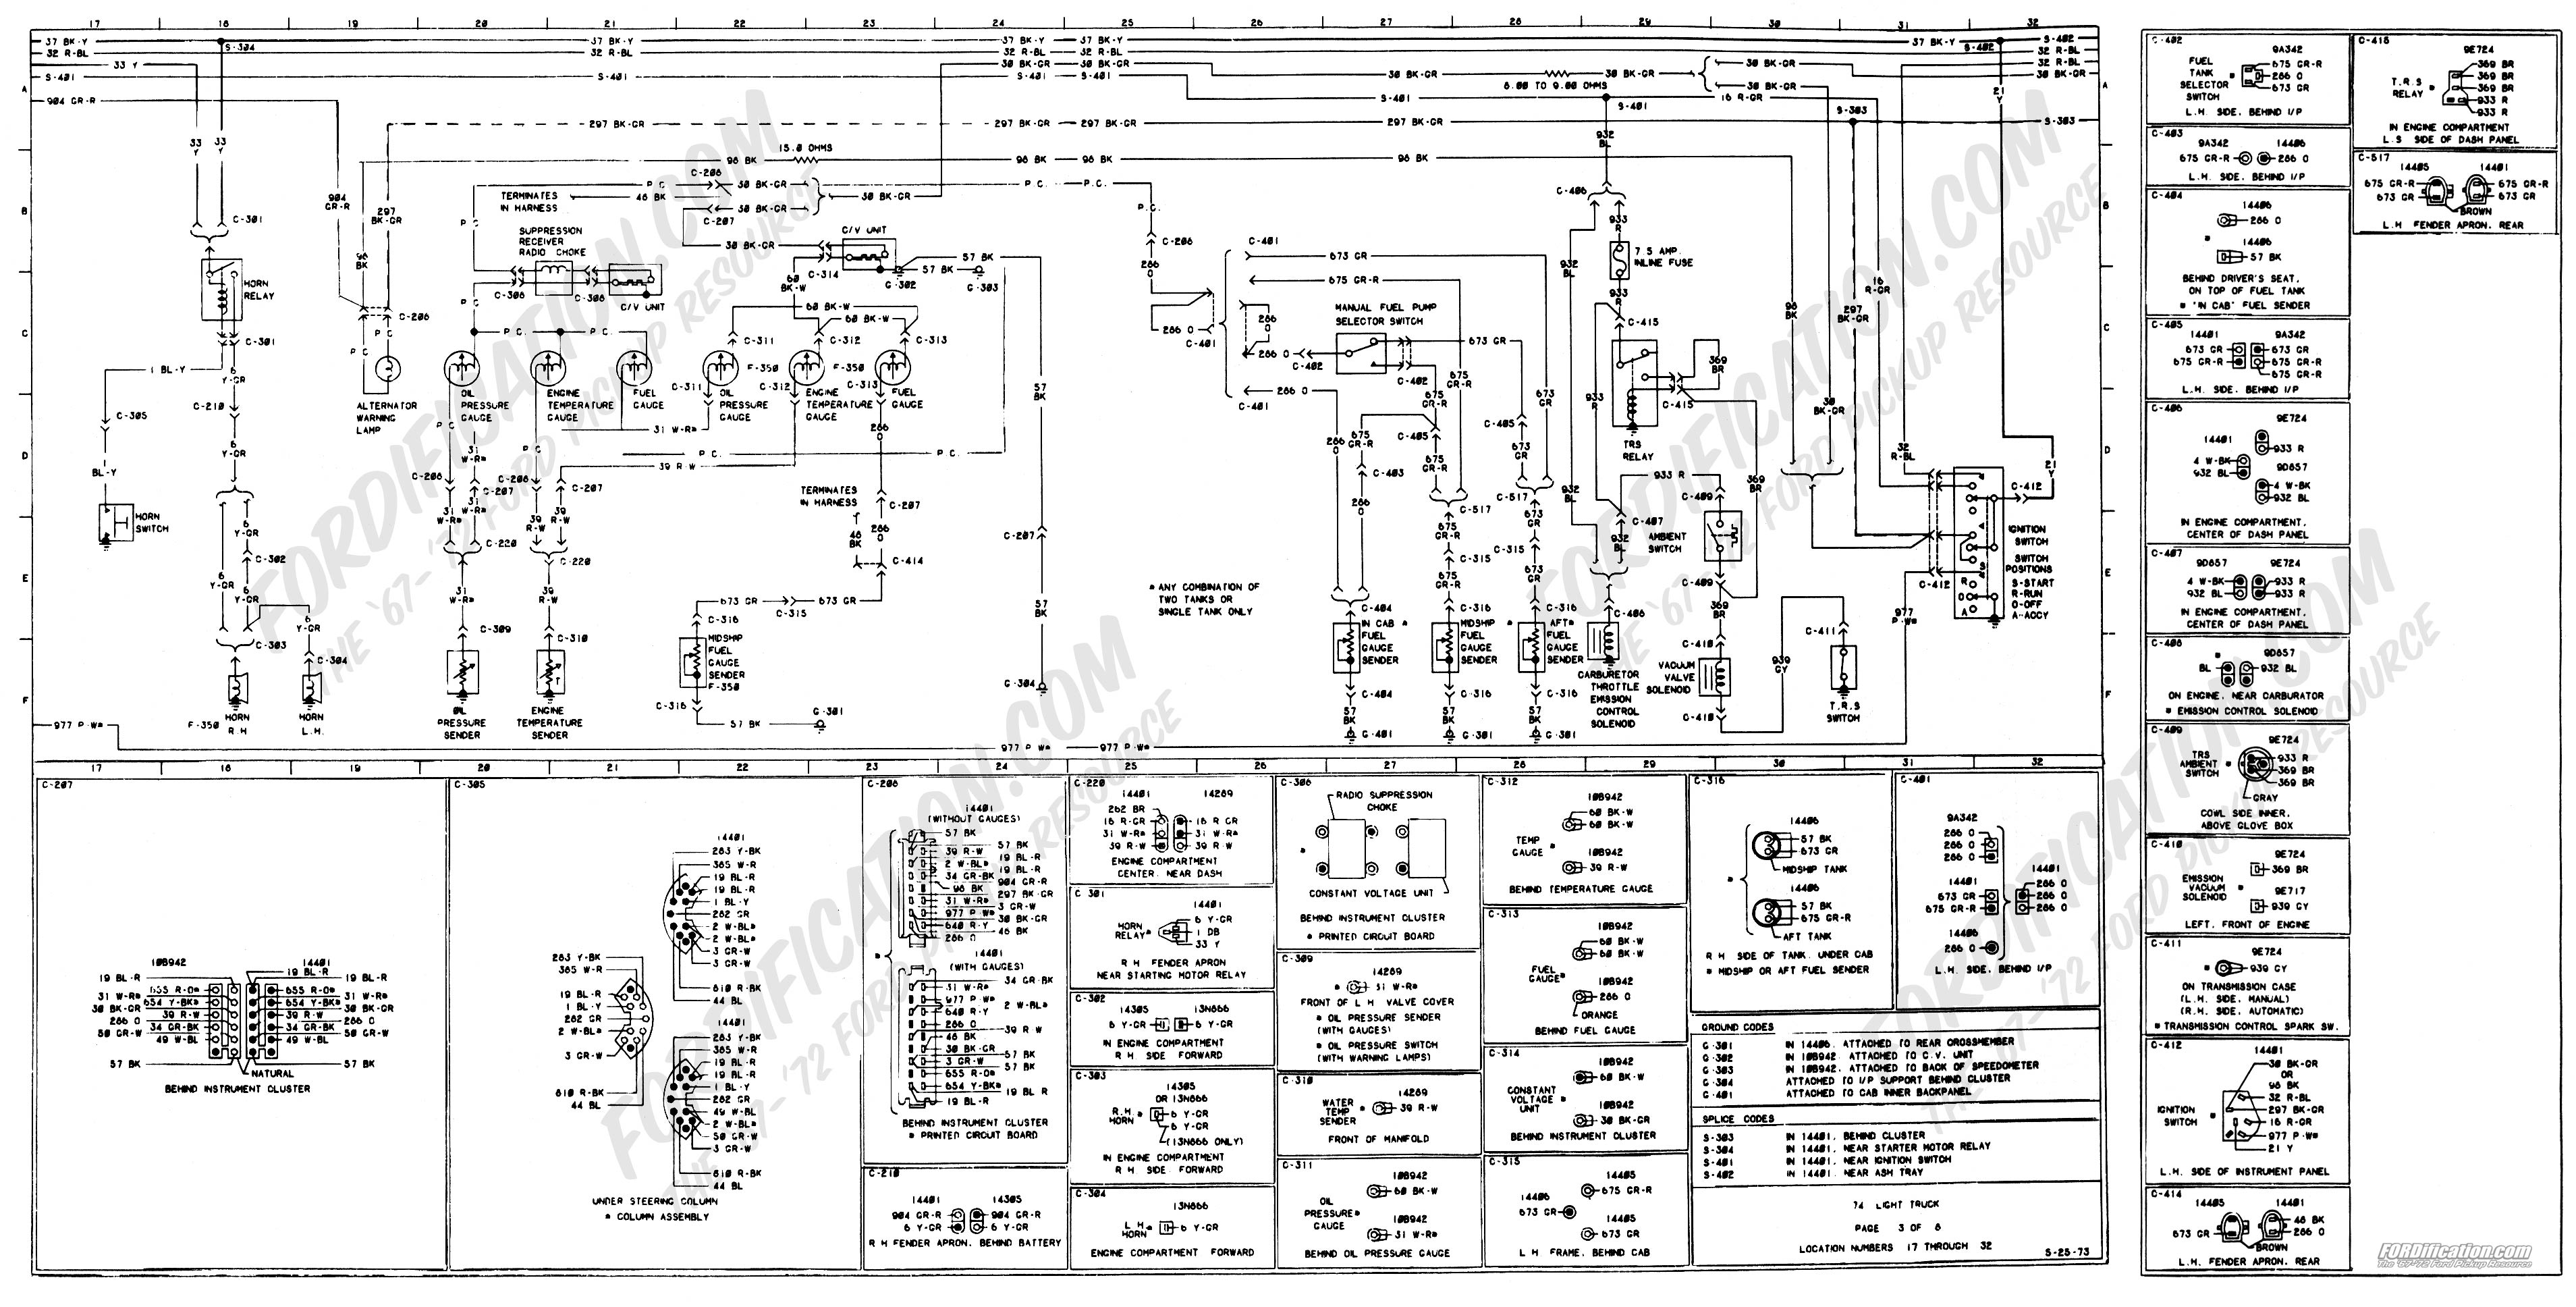 wiring_74master_3of8 1973 1979 ford truck wiring diagrams & schematics fordification net ford truck wiring diagrams free at edmiracle.co